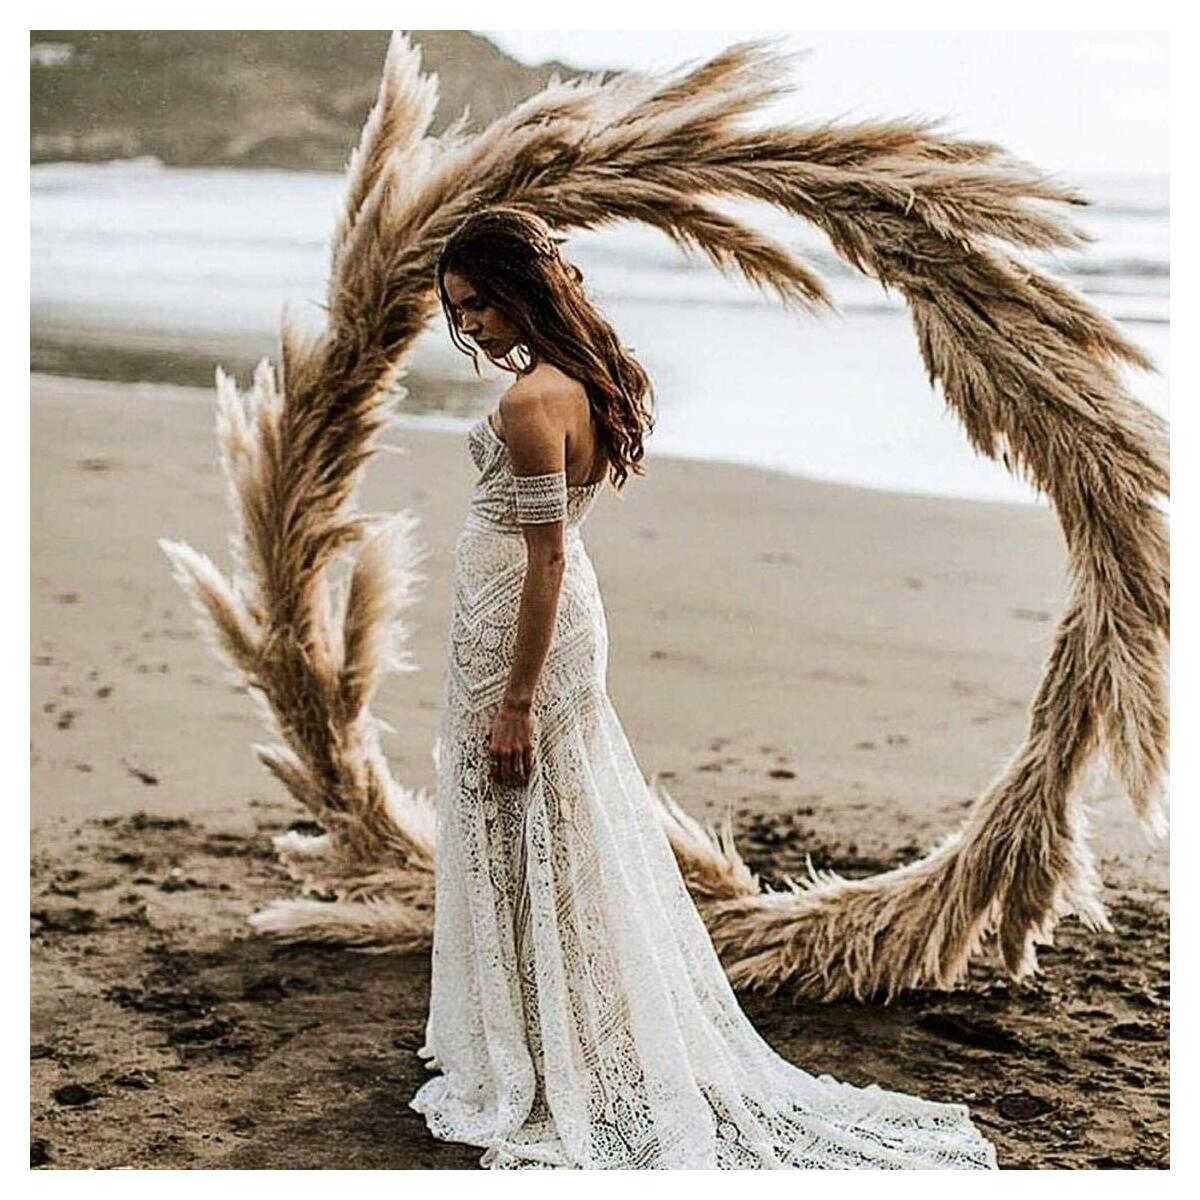 Pampas Grass | 4FT | 6 Stems | Fluffy Artificial, Faux Pampas | Perfect for Wedding Flower Arrangements, Boho Home Decor & More!